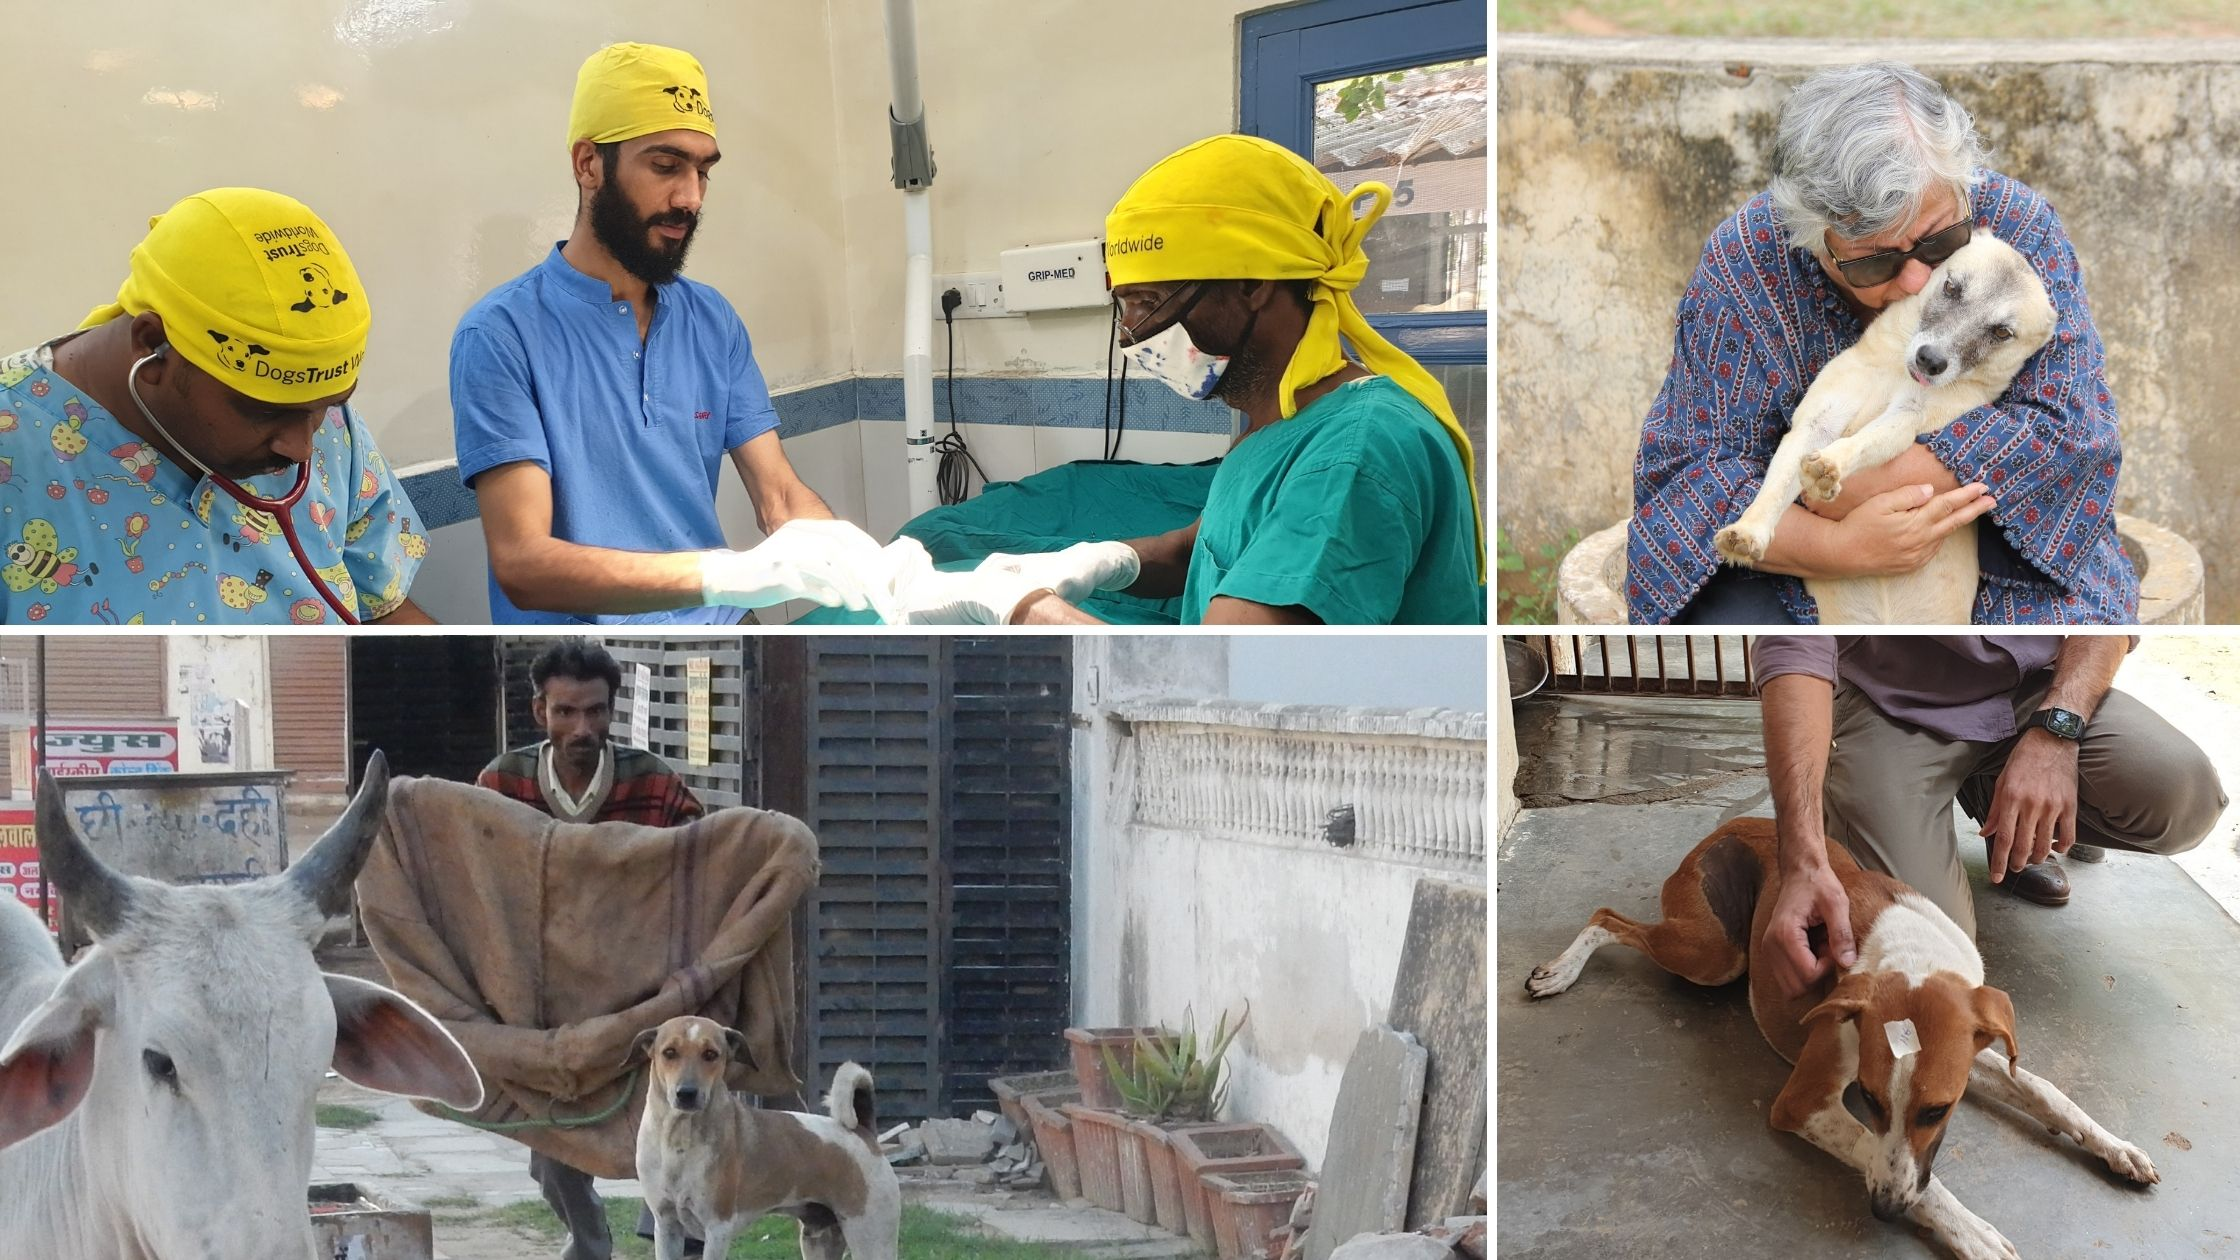 The concerted efforts of Help in Suffering, a 41-year-old animal welfare organization, towards birth control among dogs in the city have greatly reduced instances of dog bites as well as human rabies in Jaipur.